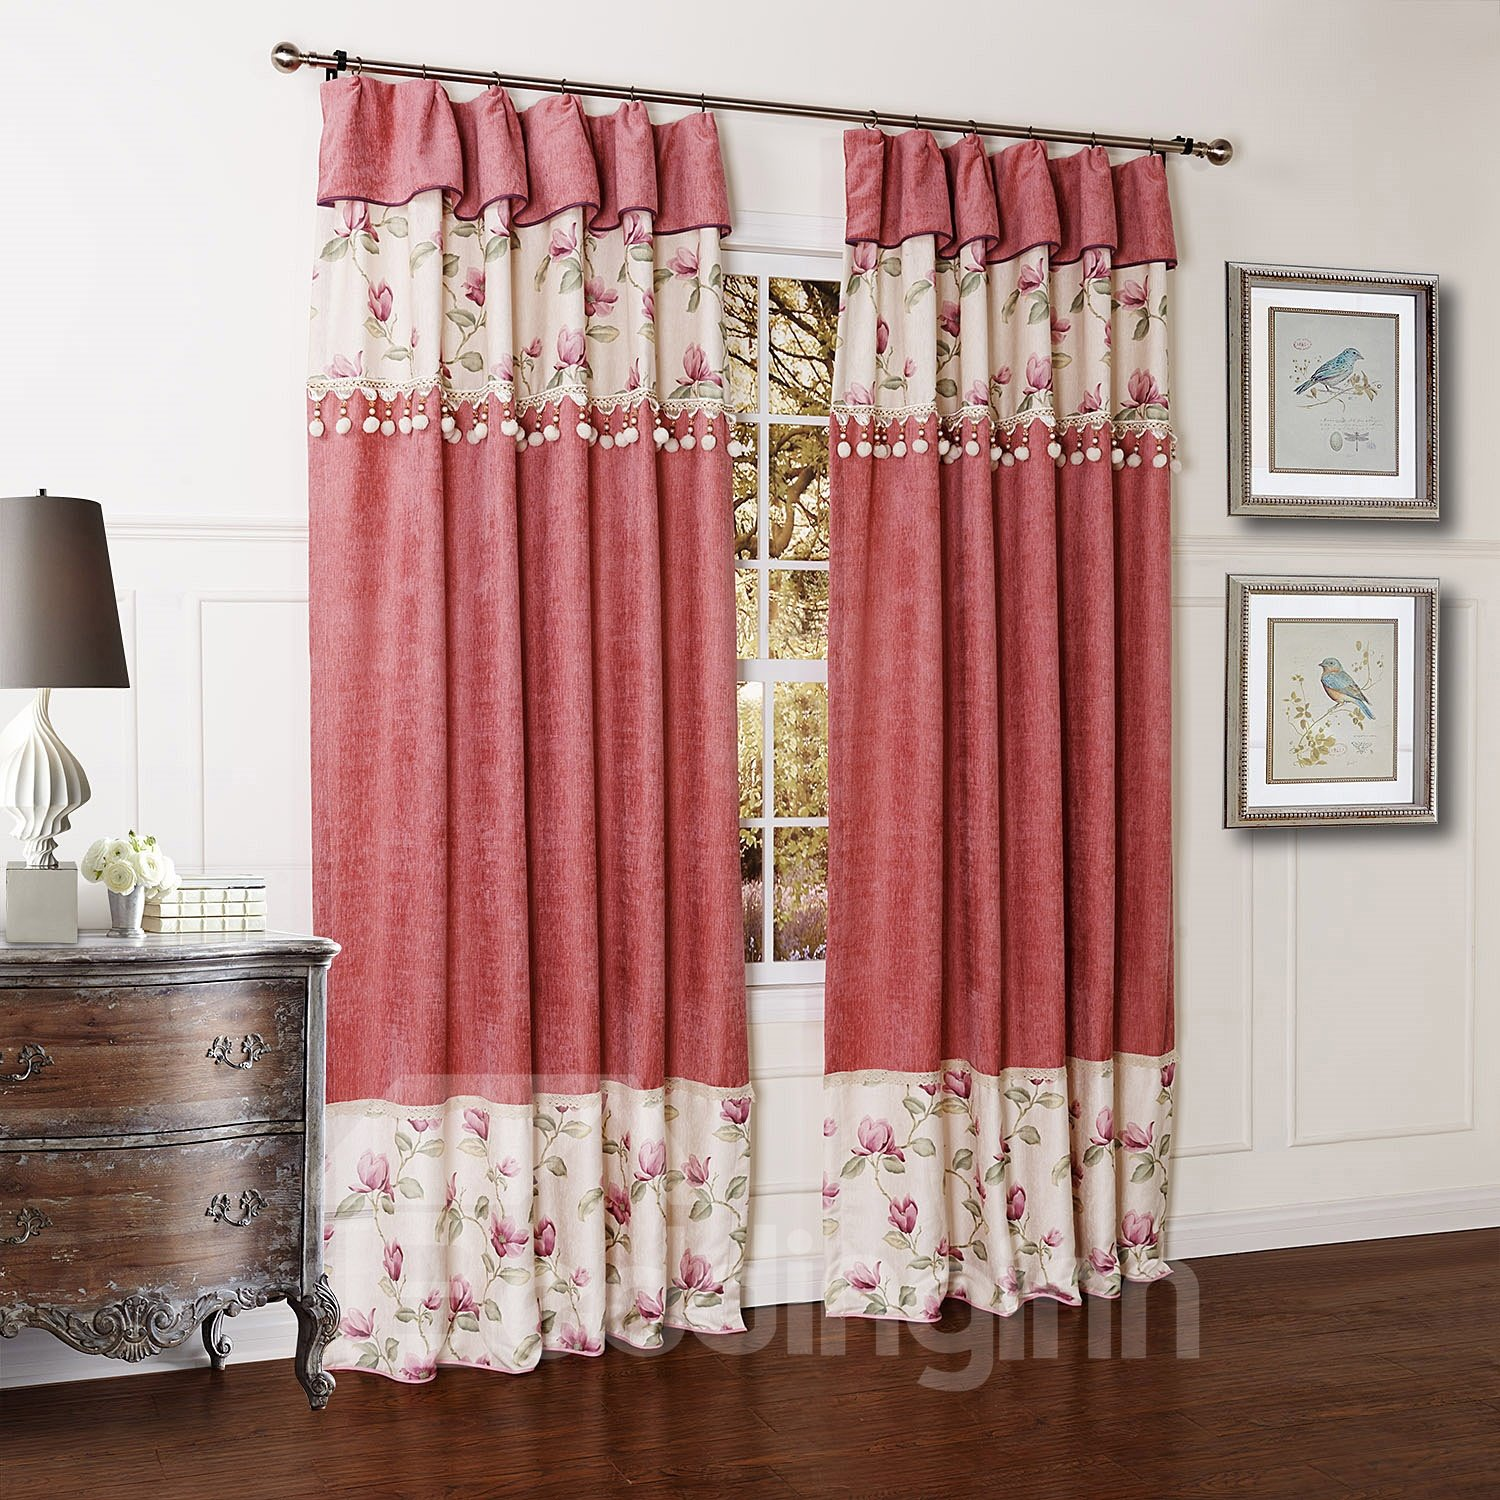 Beautiful Flowers Printing Chenille Double Pinch Pleat Custom Curtain with Valance